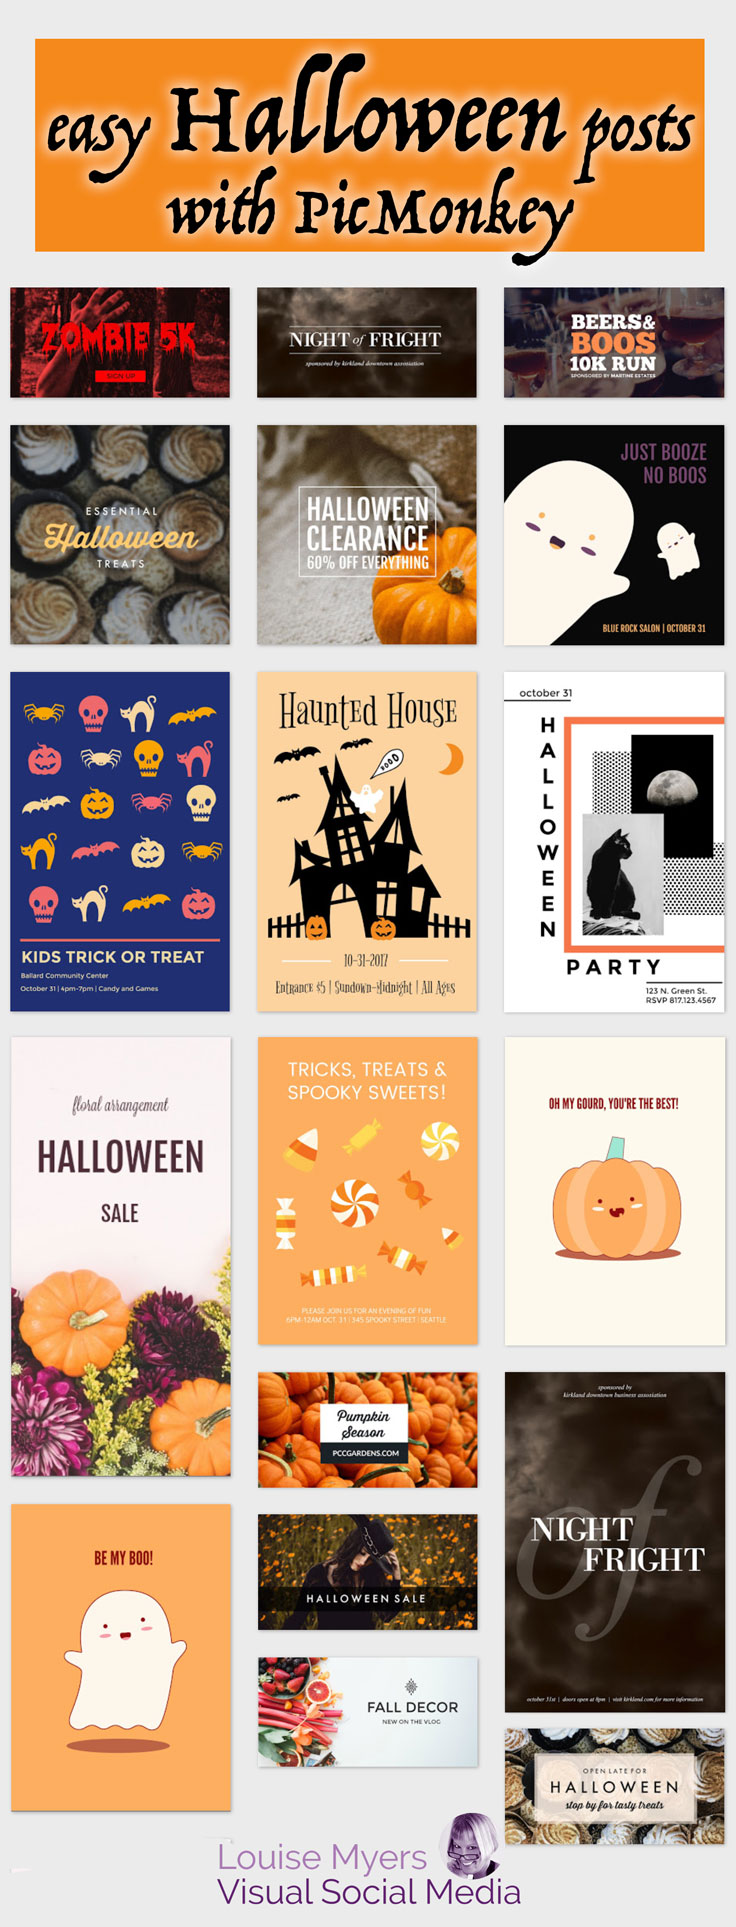 Learn how to Halloween your blog, profile pictures, and social media posts. It's easy and fun with PicMonkey! Watch our graphic design video tutorials.